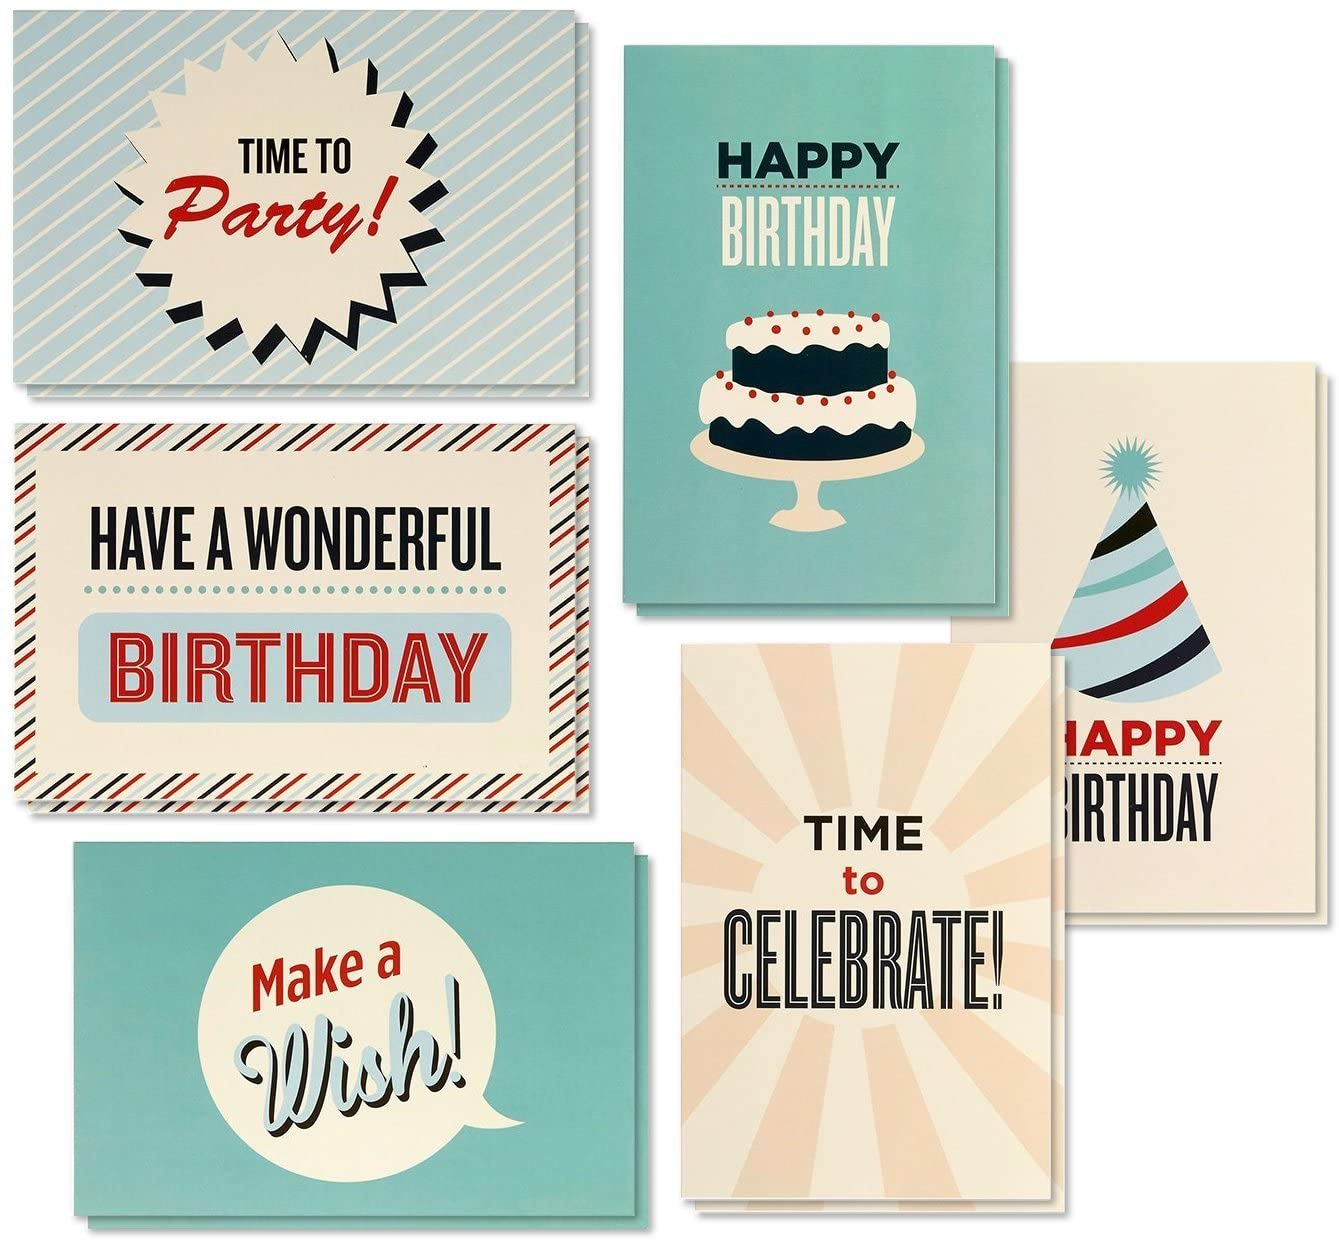 48-Pack Happy Birthday Cards Box Set with Envelopes, 6 Assorted Retro Party Designs, Blank Inside, for All Ages Men Women Kids Coworkers, 4 x 6 Inches